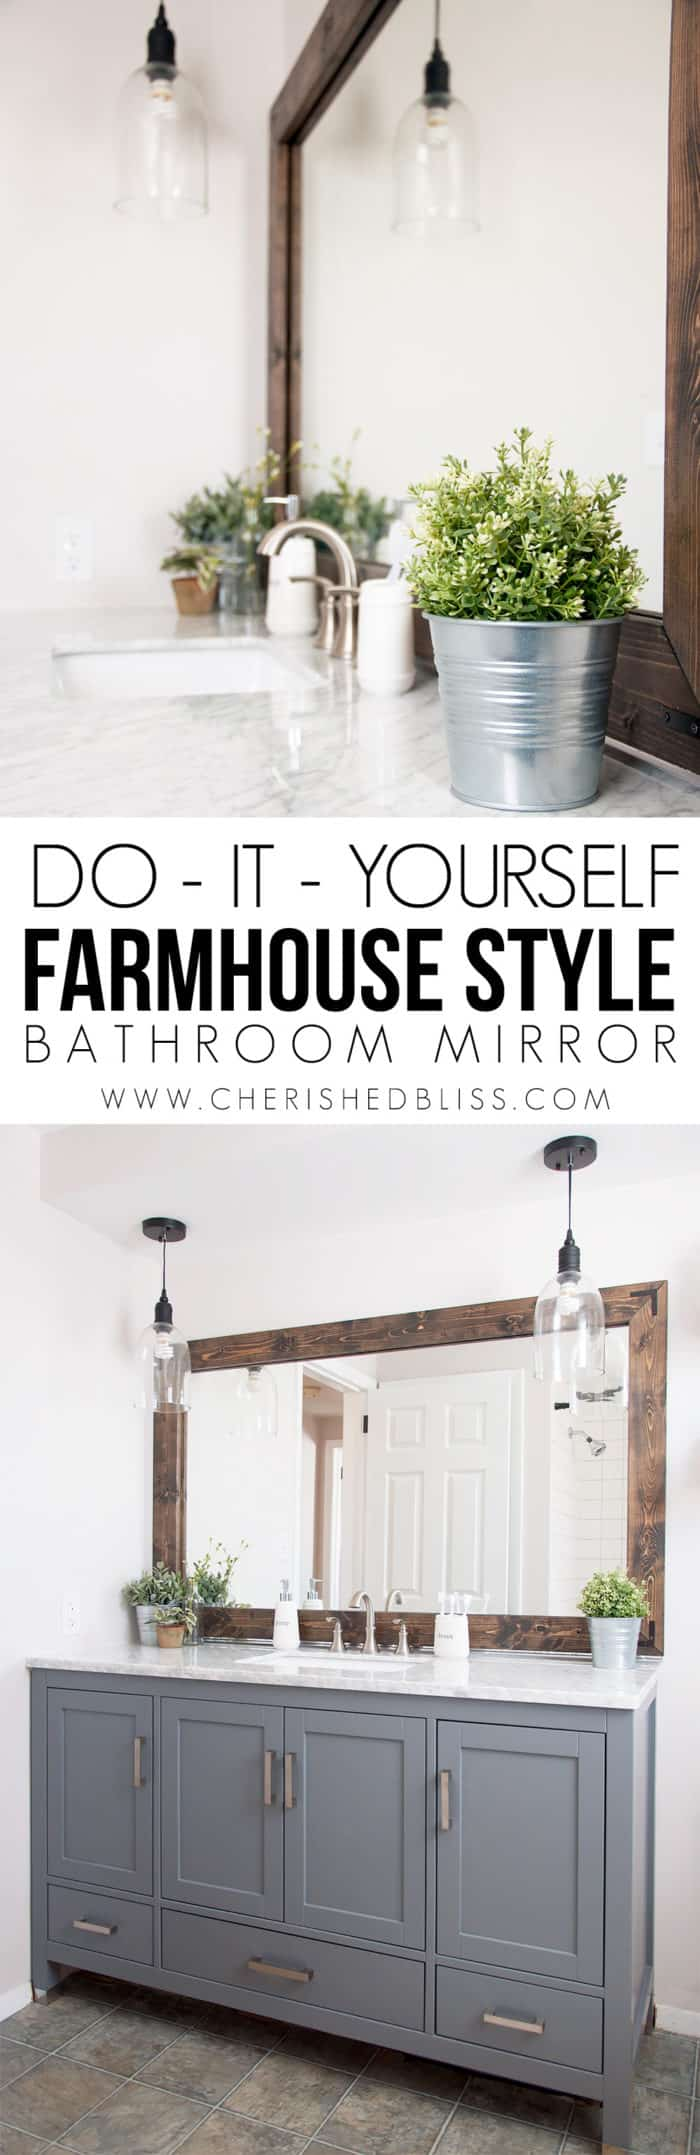 Large diy farmhouse style bathroom mirror